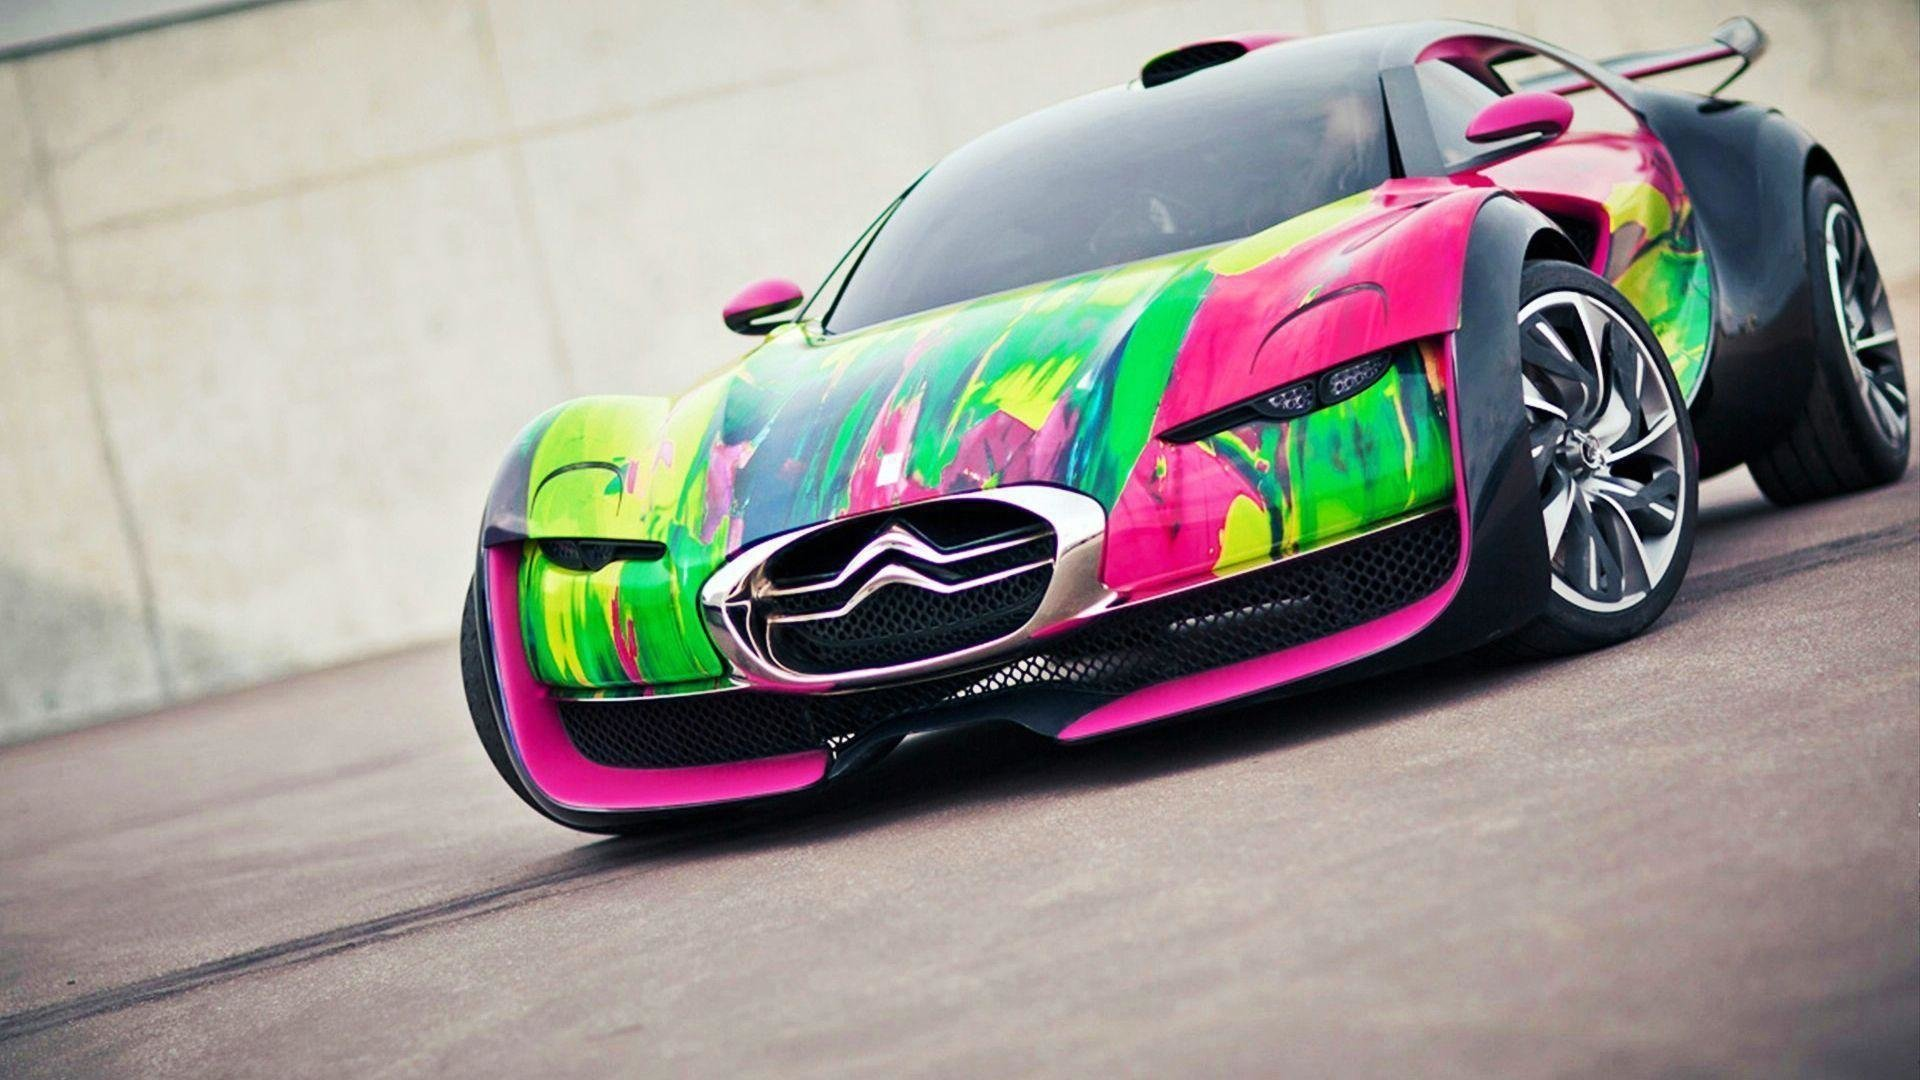 Latest Hd Cars Wallpapers 1080P Wallpaper Cave Free Download